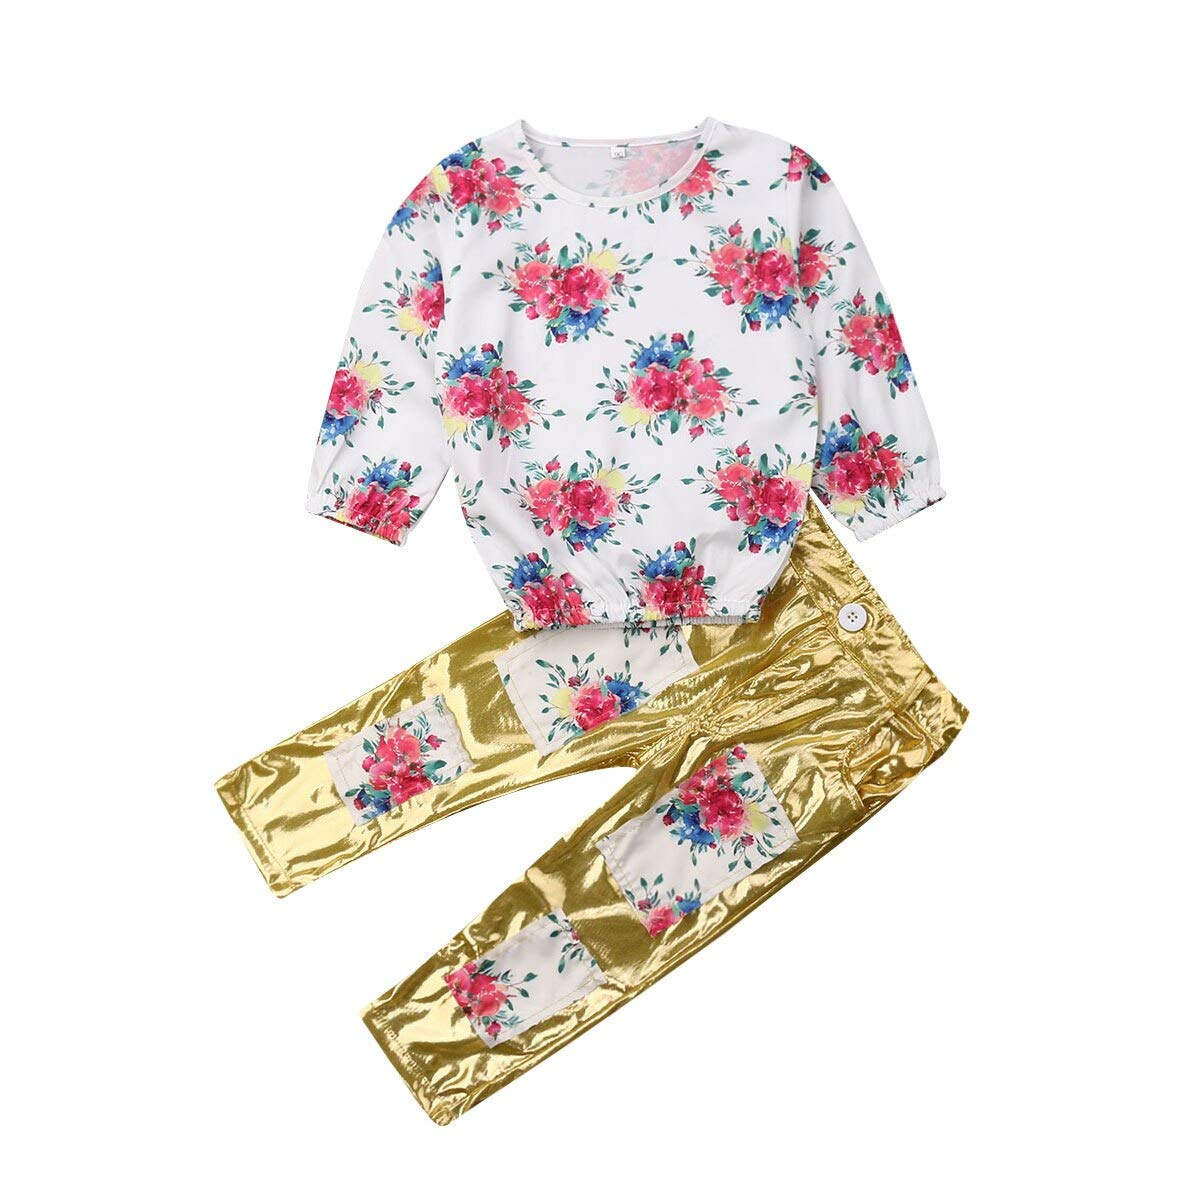 Leggings Pants Outfits 2019 Toddler Kids Baby Girl Outfit Clothes T-shirt Tops